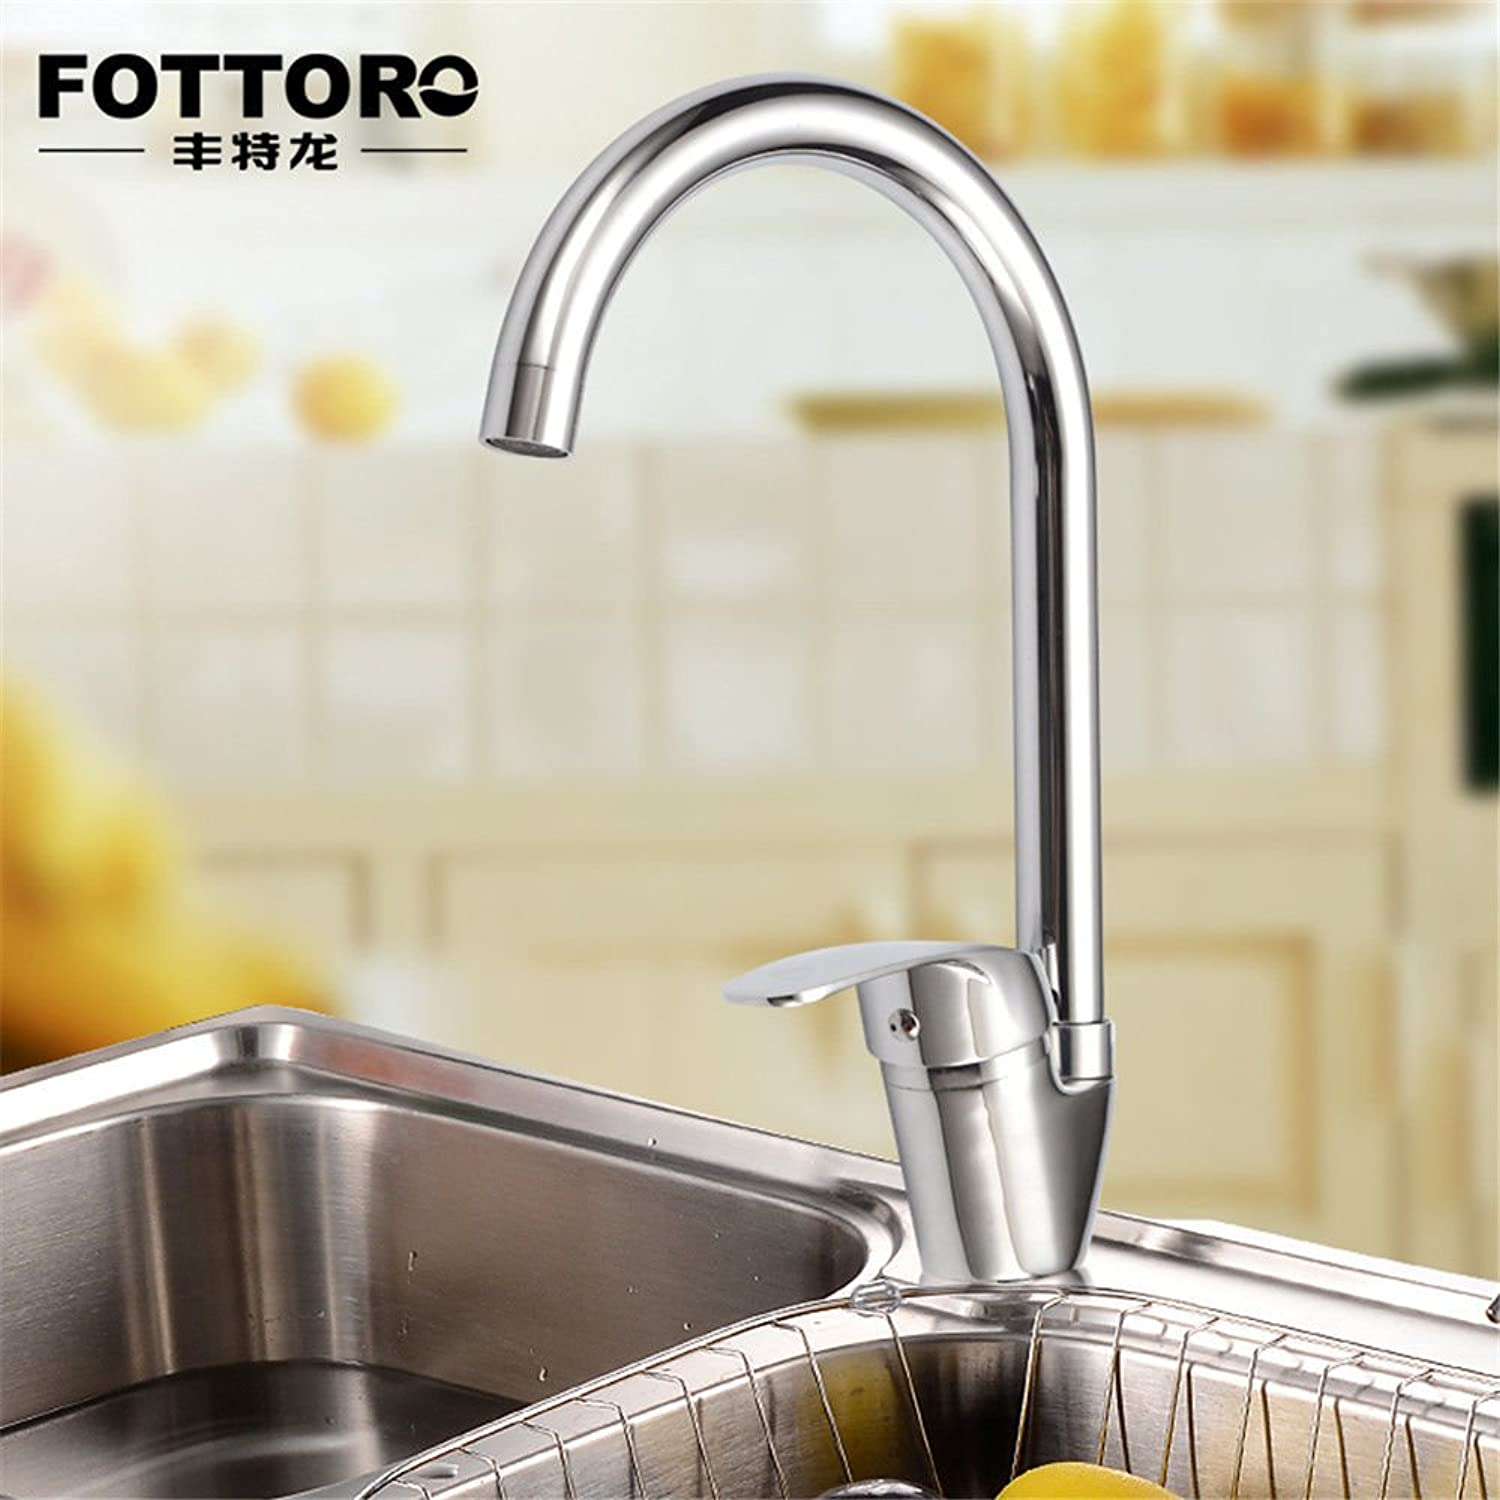 Commercial Single Lever Pull Down Kitchen Sink Faucet Brass Constructed Polished Fine Copper redatable Kitchen Faucet Hot and Cold Faucet Kitchen Sink Faucet Sink Faucet